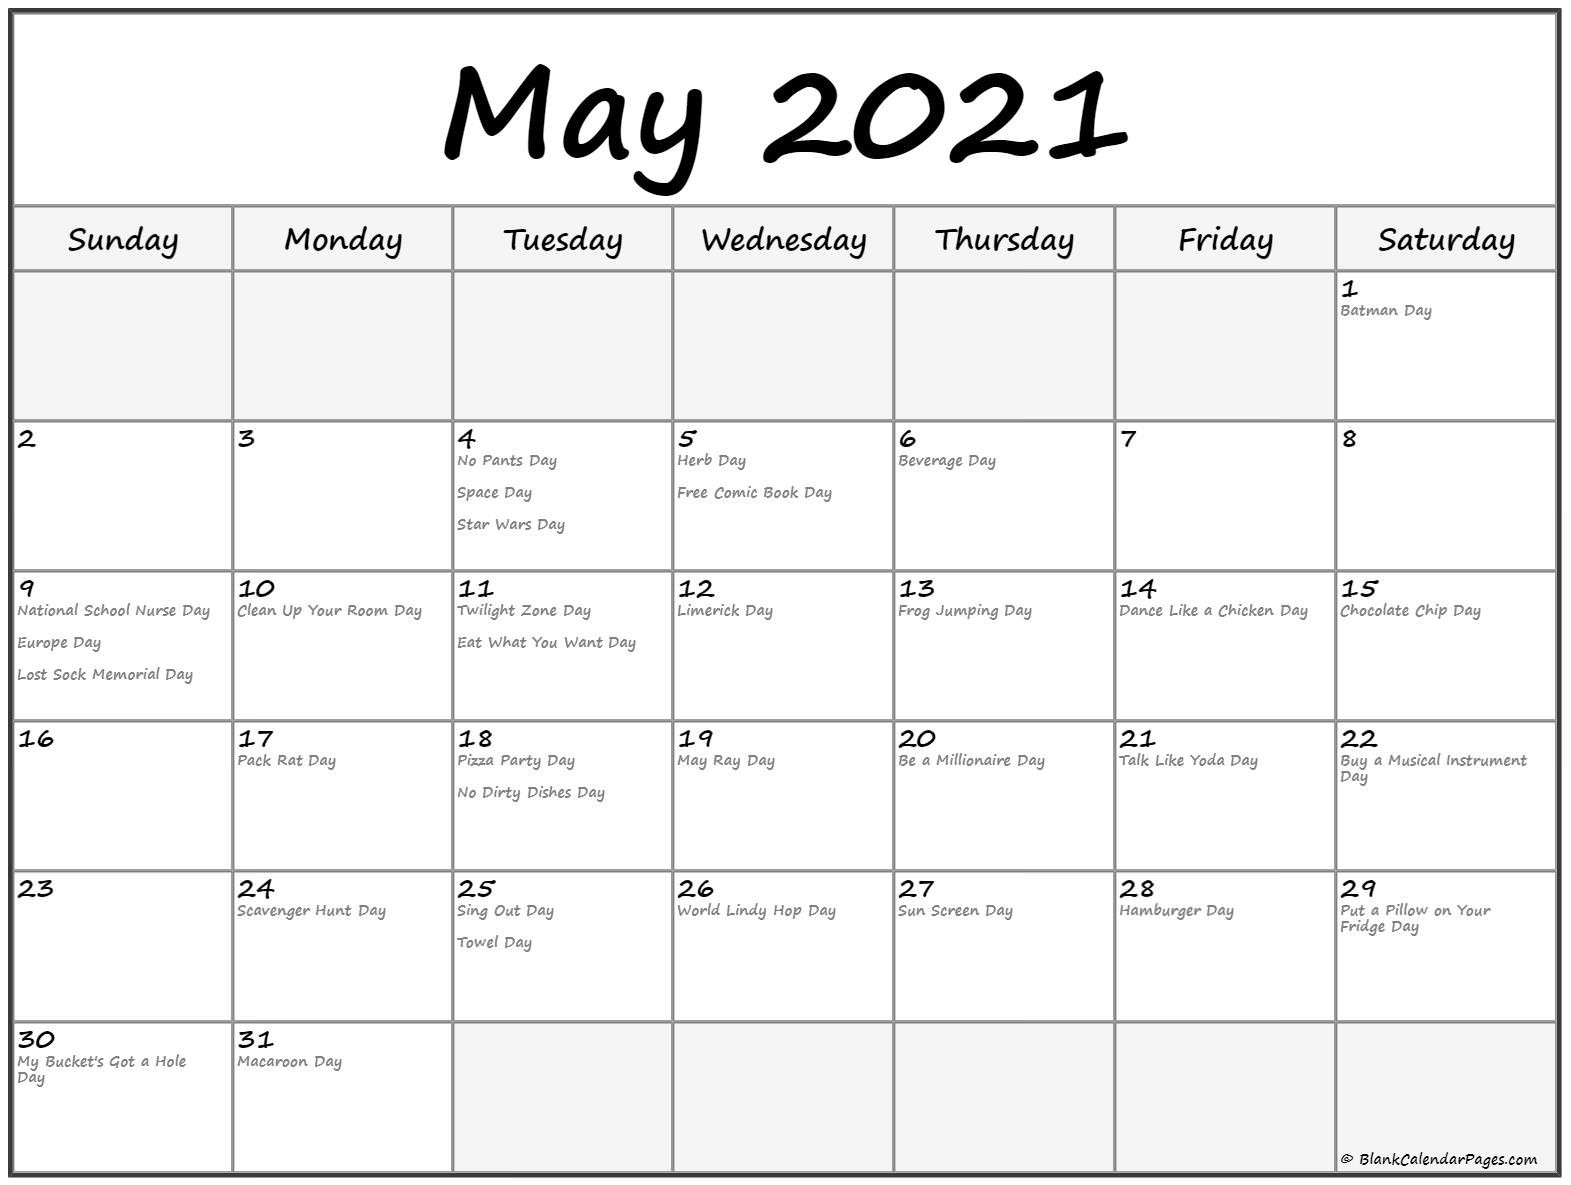 Monthly ::may 2021 calendar with holidays